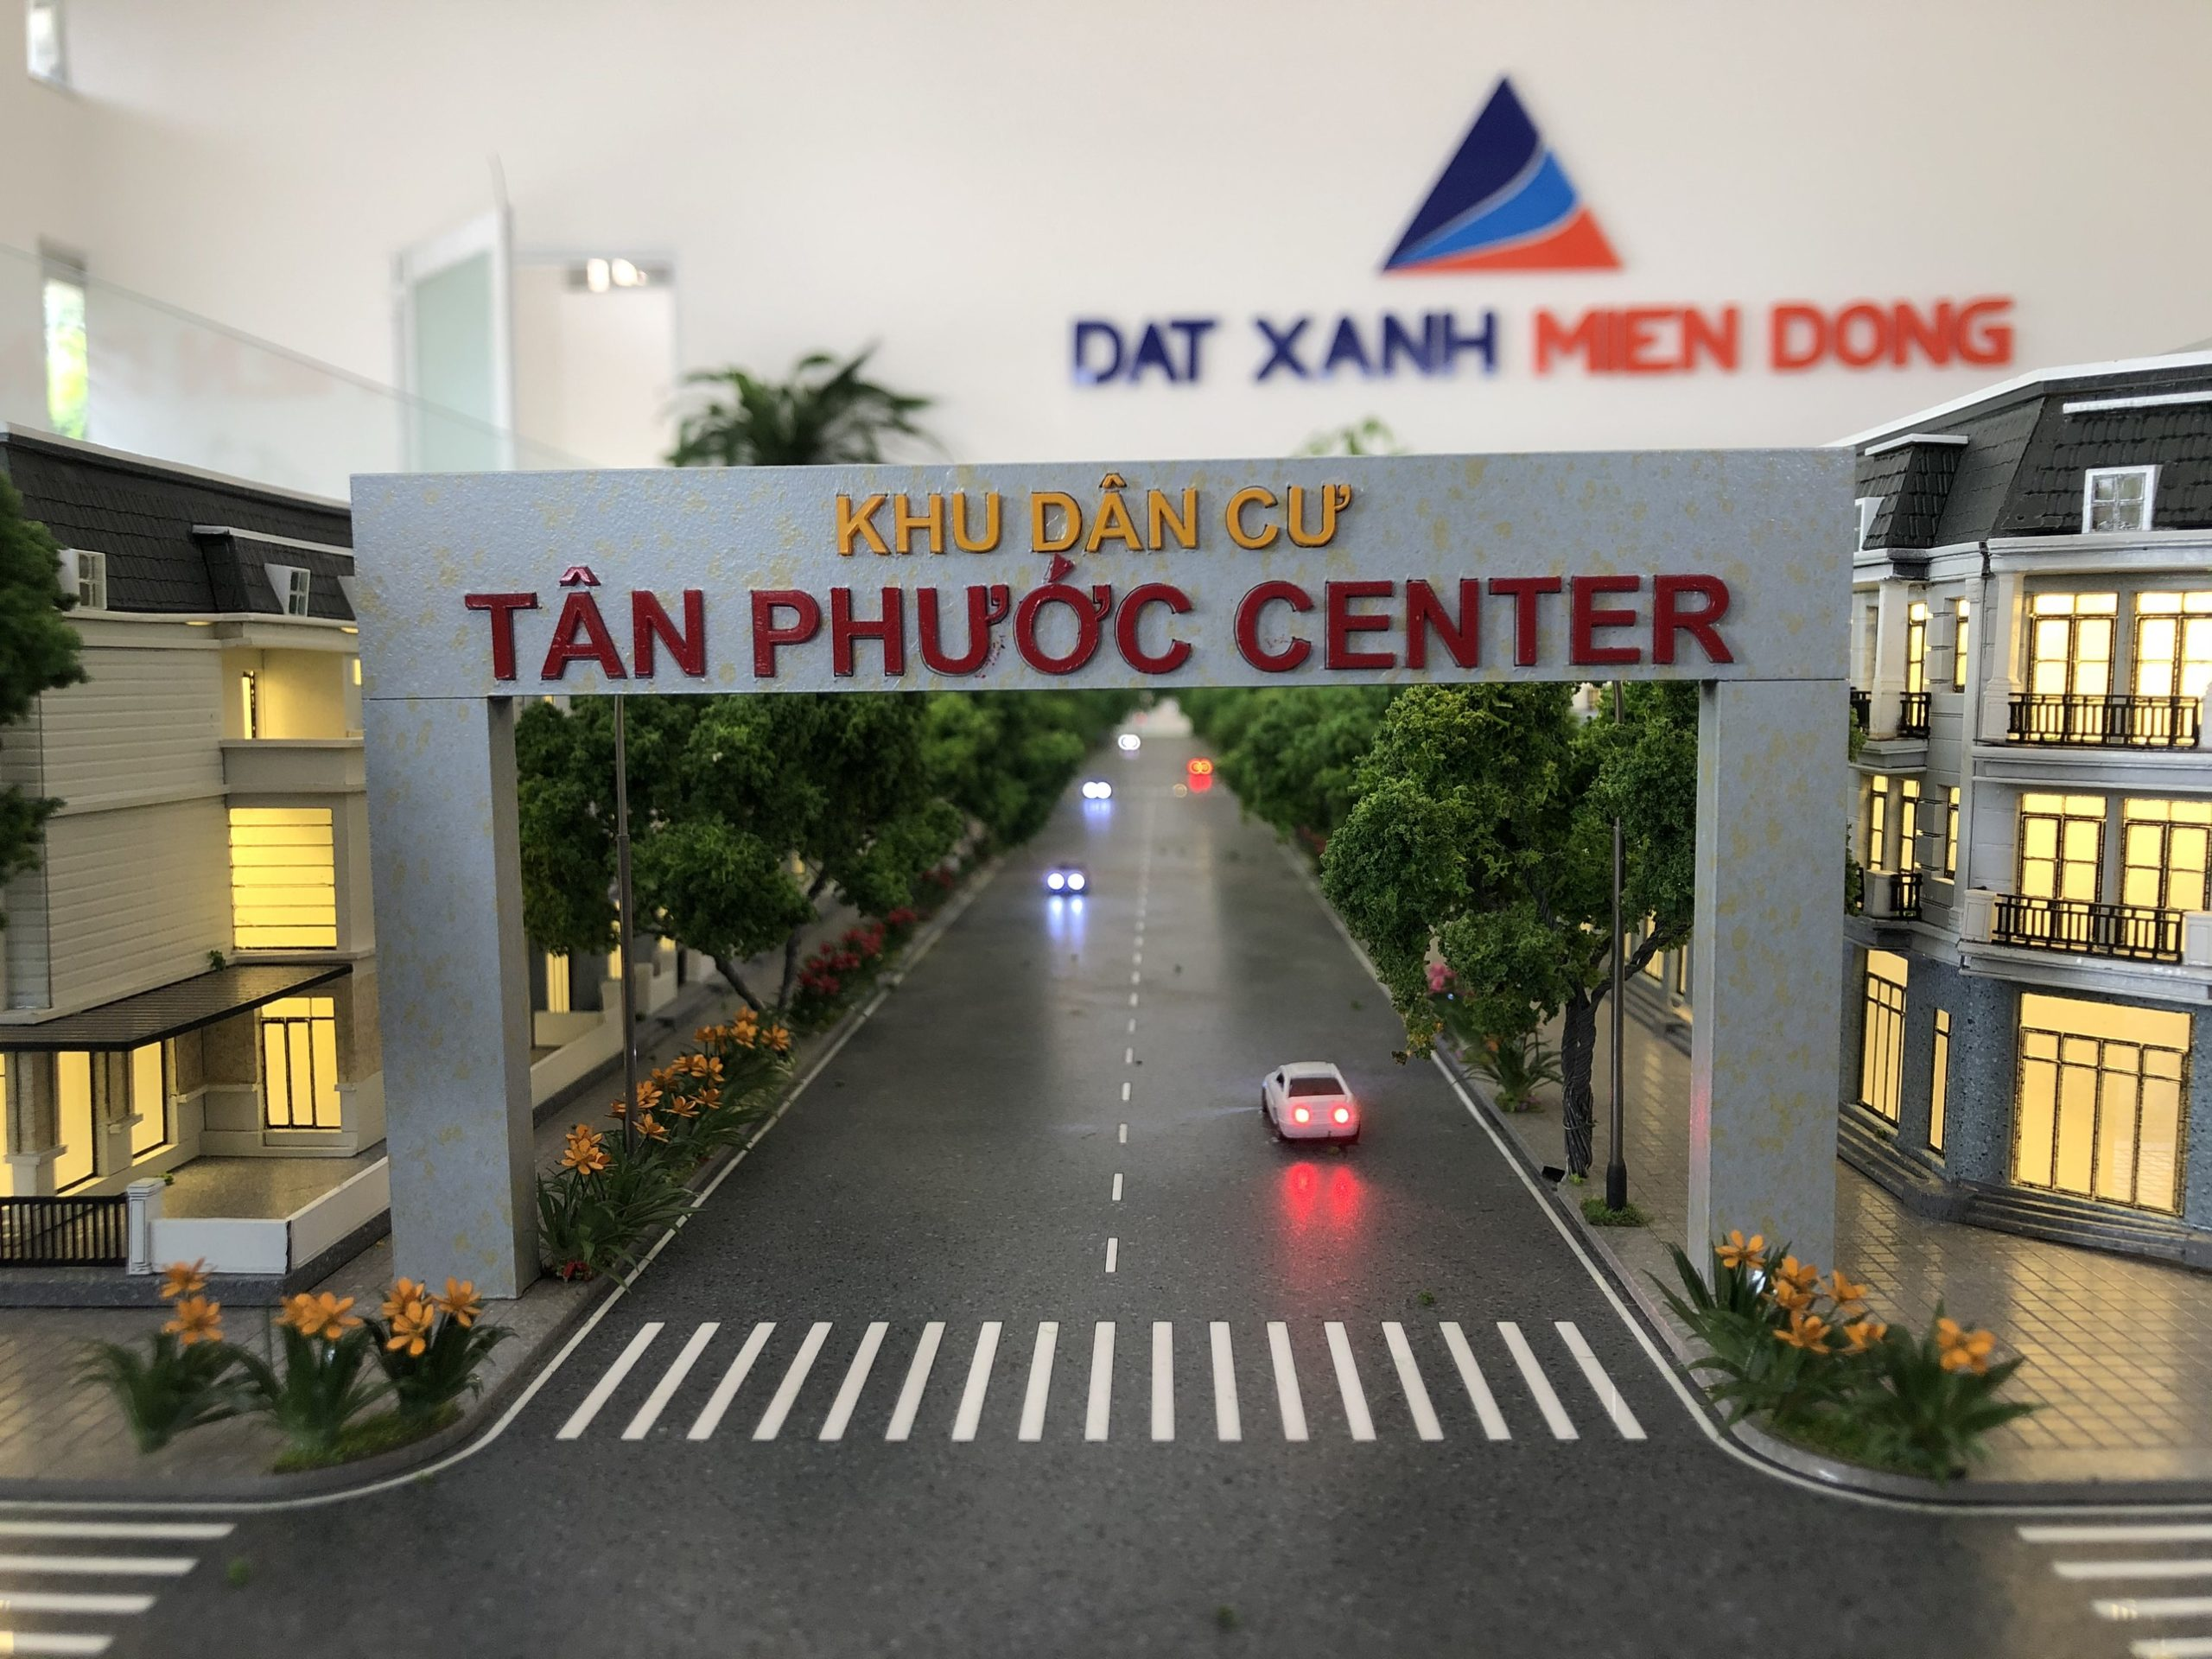 mo hinh tan phuoc center dat nen binhphuo shophousevn scaled 1